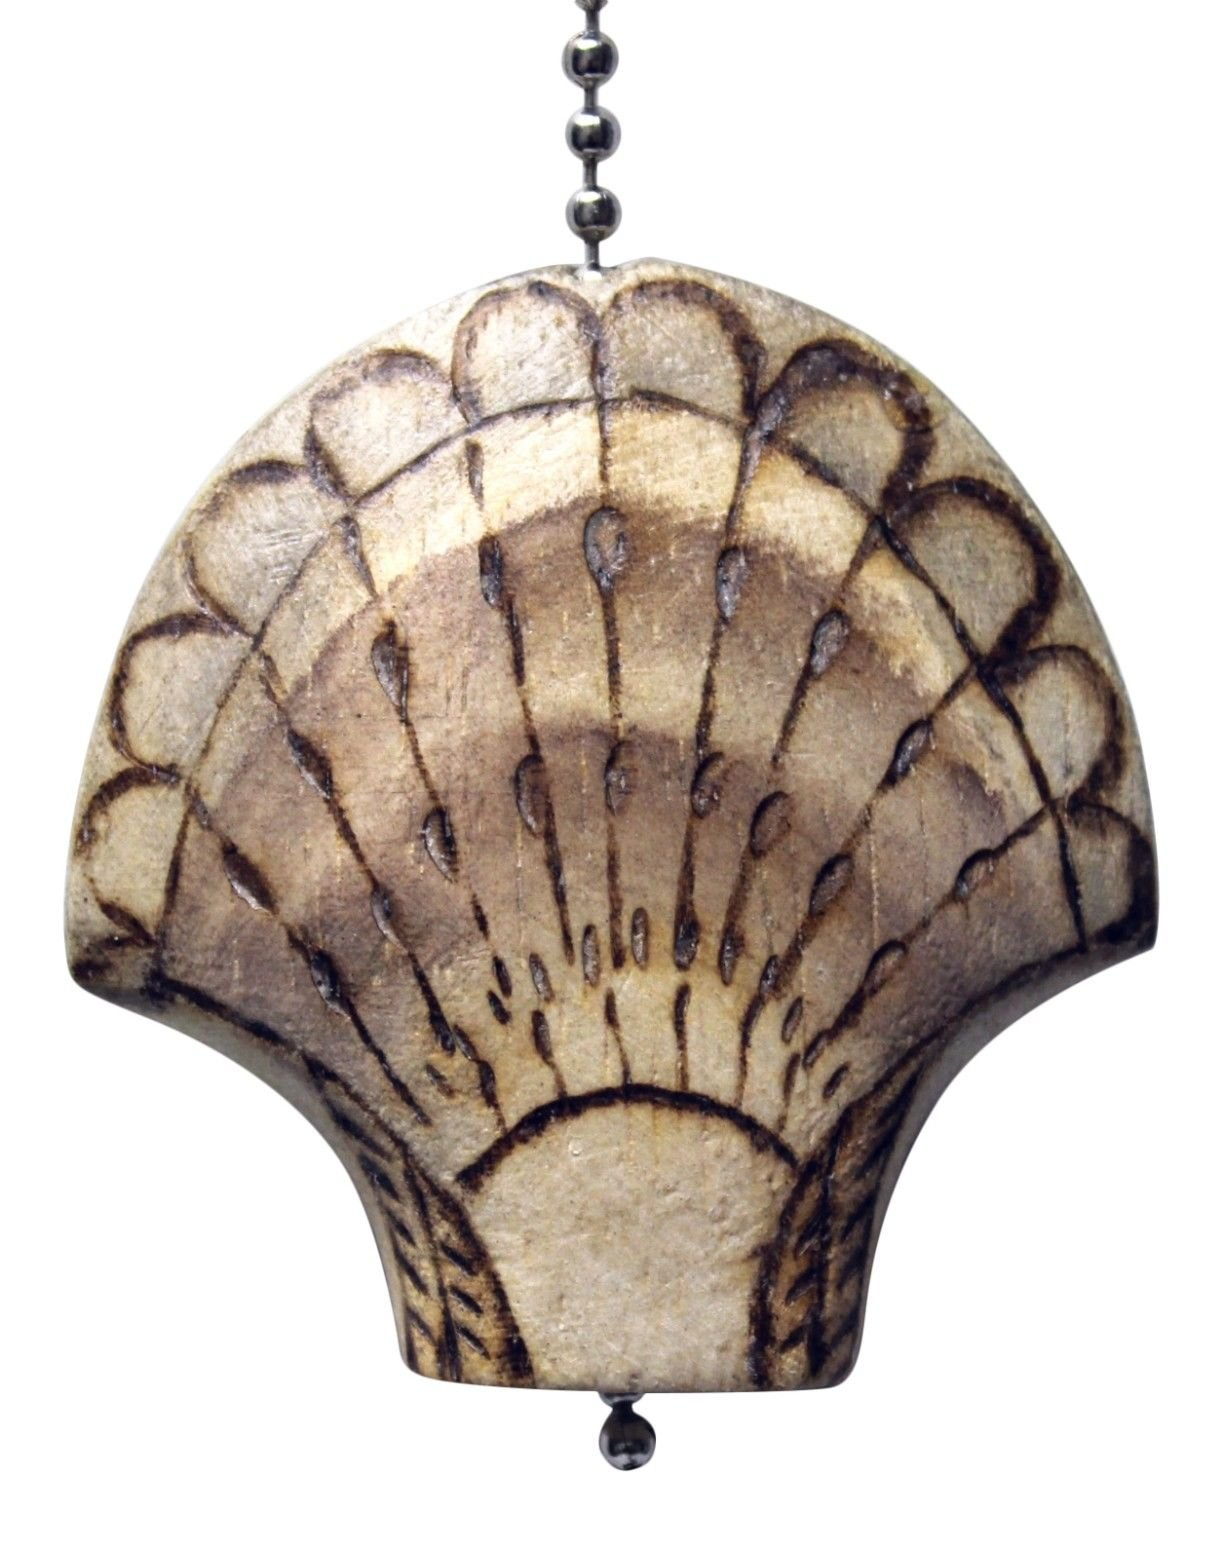 Gatton Scallop Shell Wood Burned Hand Carved Wood Ceiling Fan Light Pull by Gatton